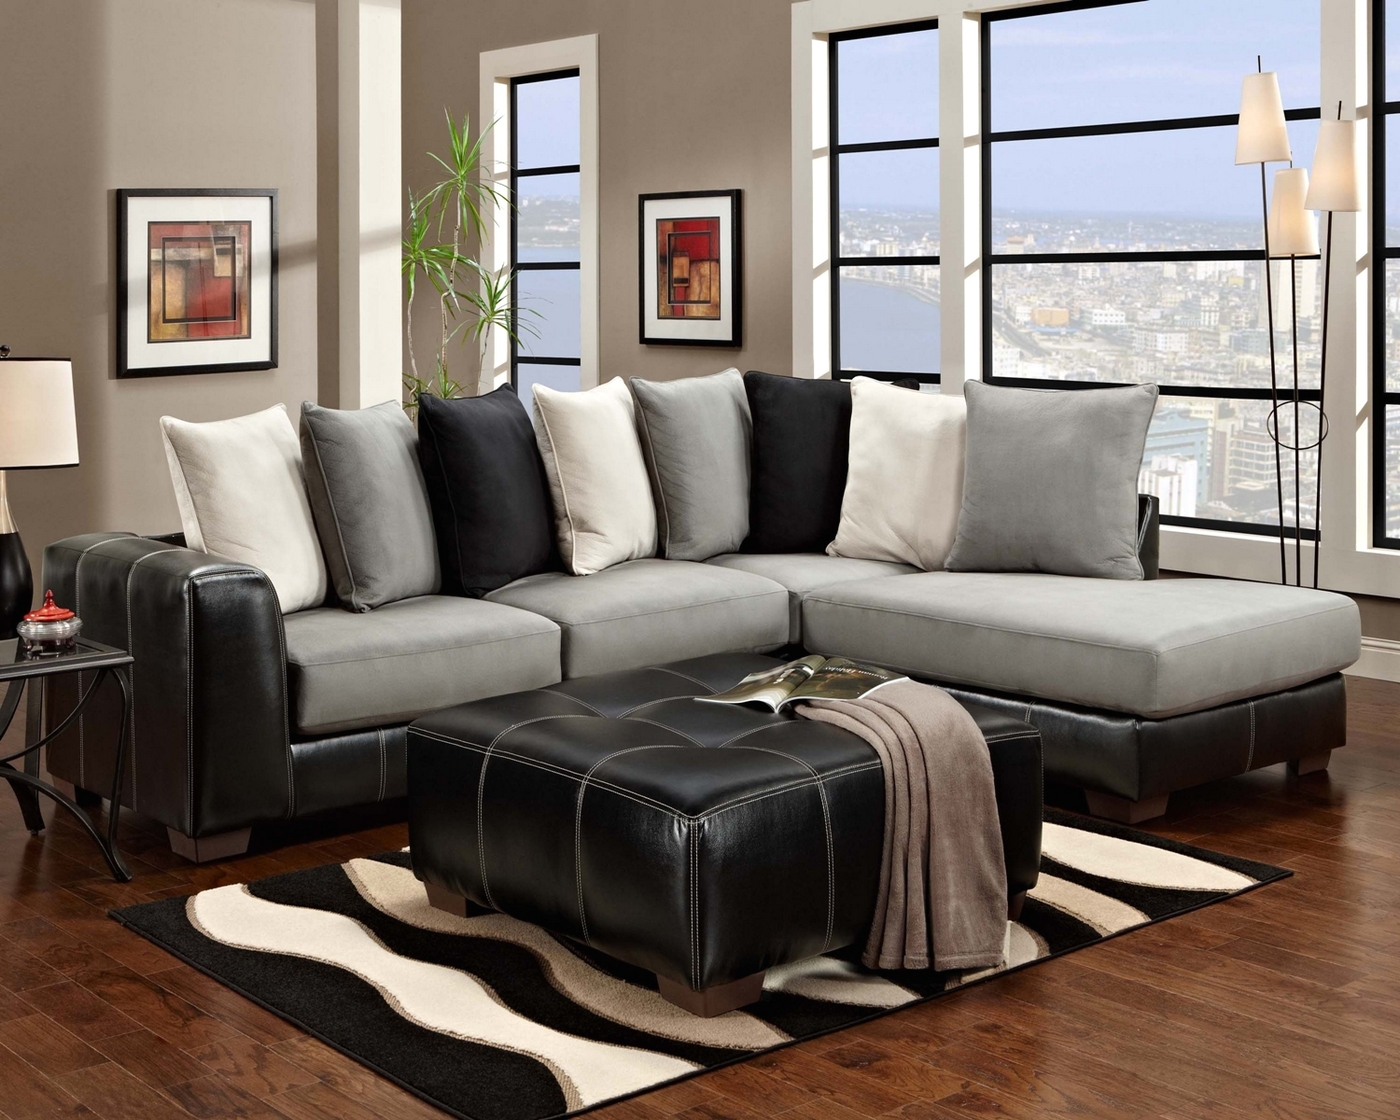 Idol Steel Black Gray Amp White Sectional Sofa Loose Pillow Back